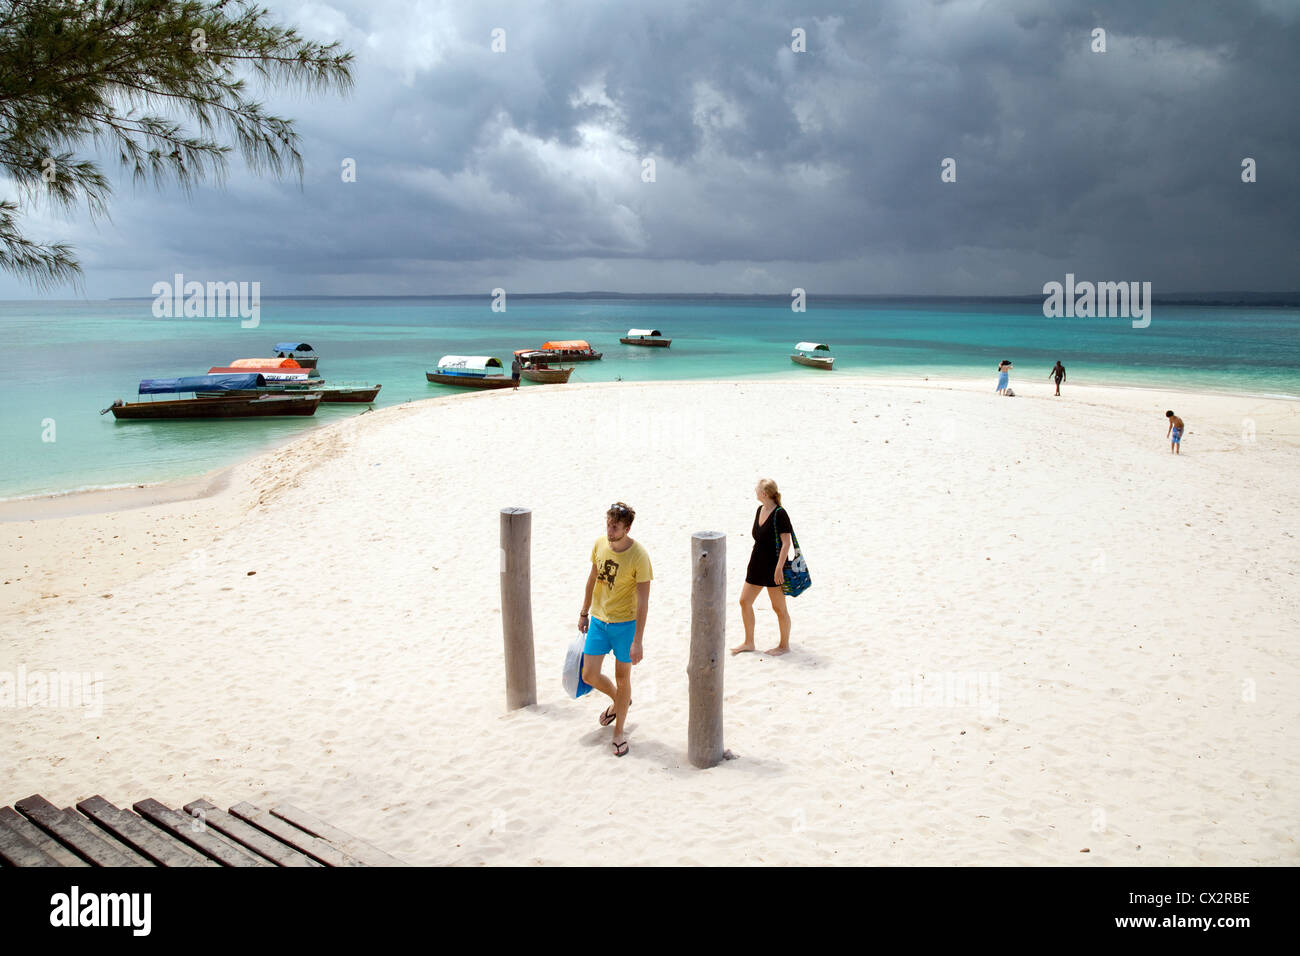 Tourists arriving on the beach, Prison Island, Zanzibar Africa - Stock Image